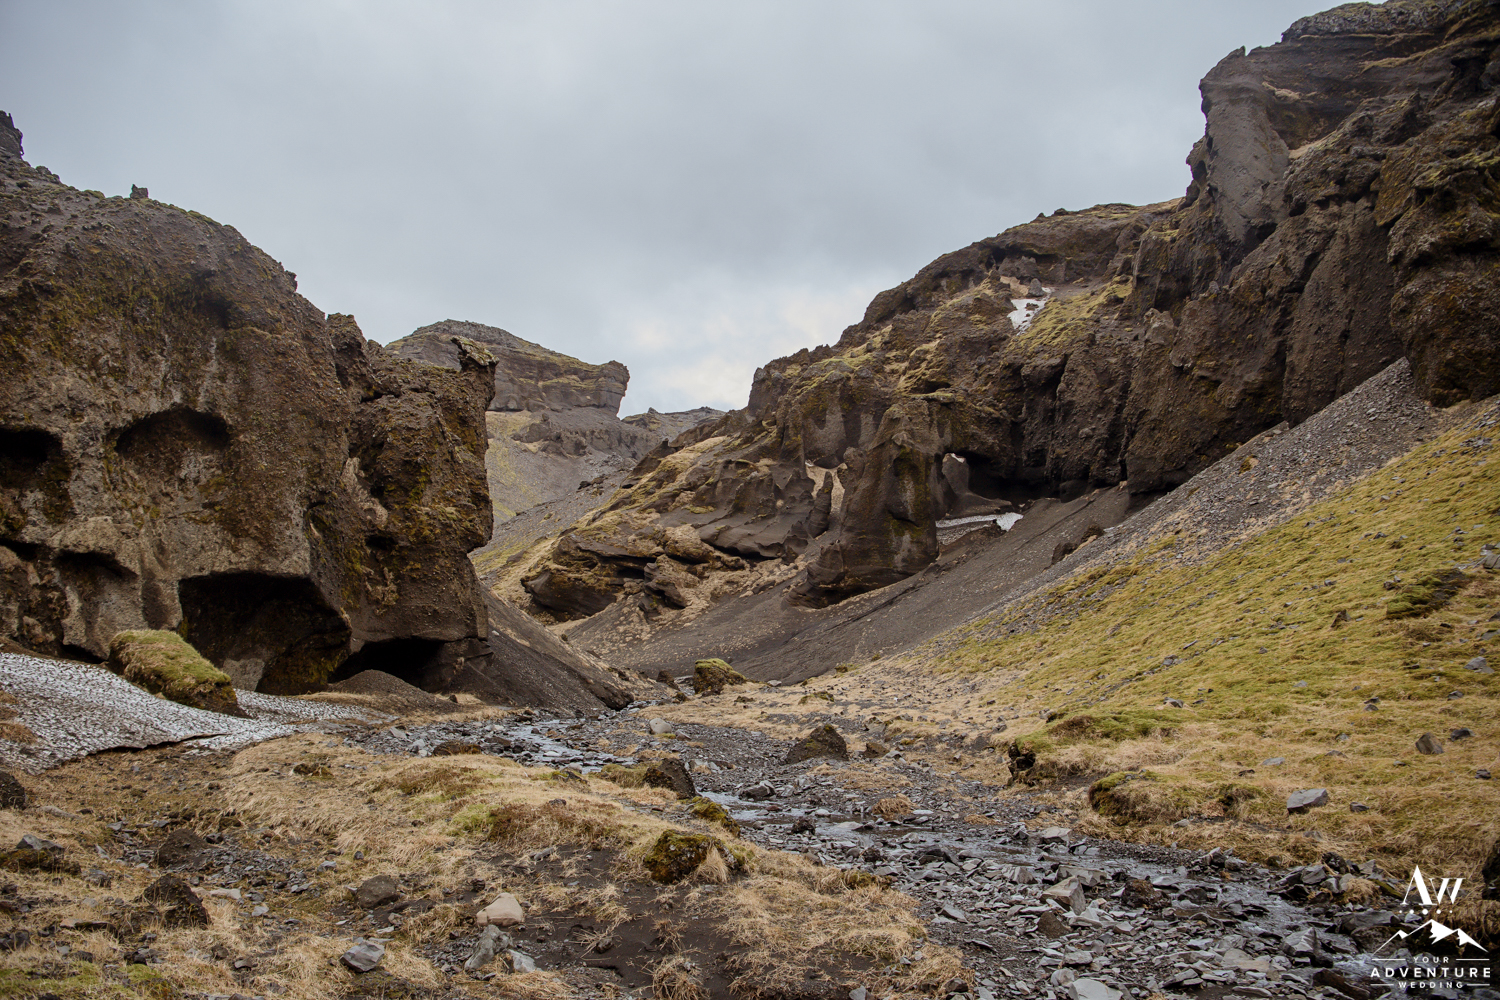 Iceland Private Canyon with River running through